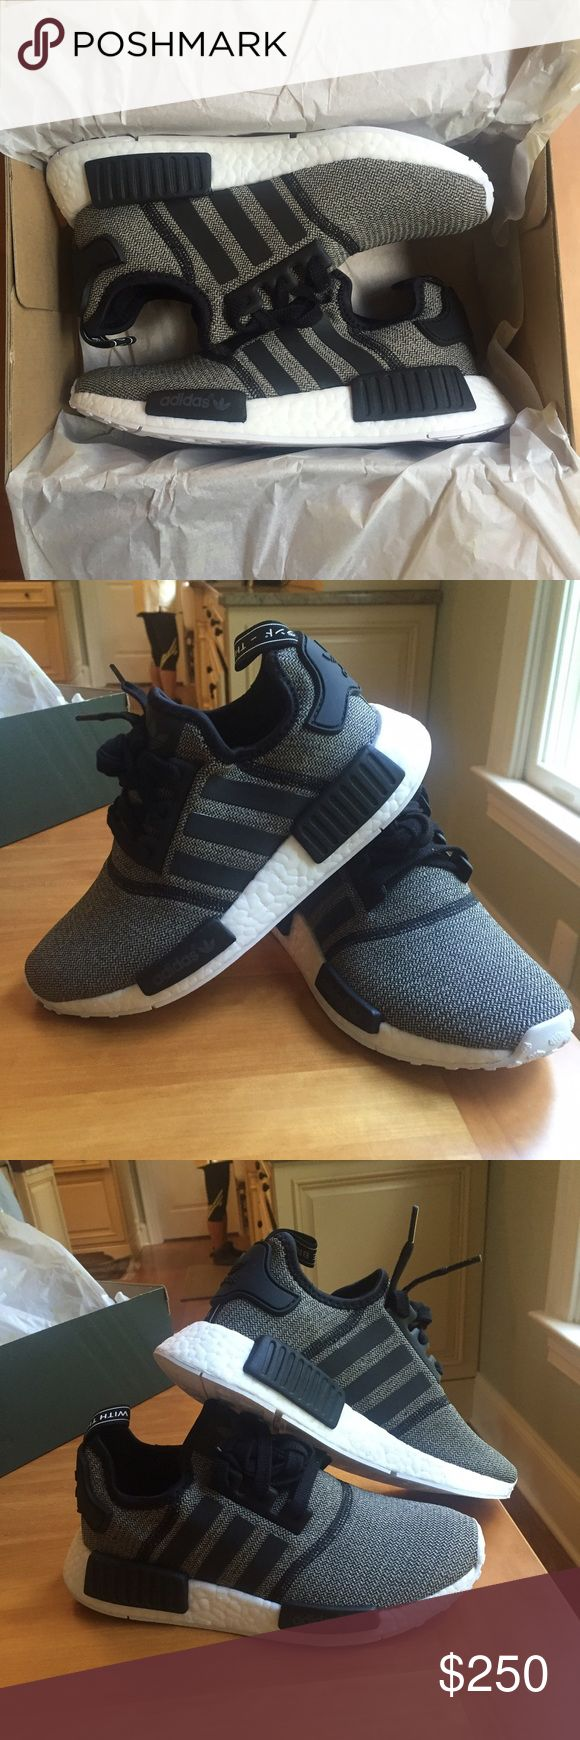 "NEW Adidas NMD R1 ""Reverse Reflective"" Women's 6 Adidas Originals NMD_R1 W Shoes Women's Size 6 / EU Size 37 1/3 Fits like a Women's 6.5/7 Deadstock, New in Box Color is Core Black / Grey SOLD OUT IN STORES Adidas Shoes Sneakers"